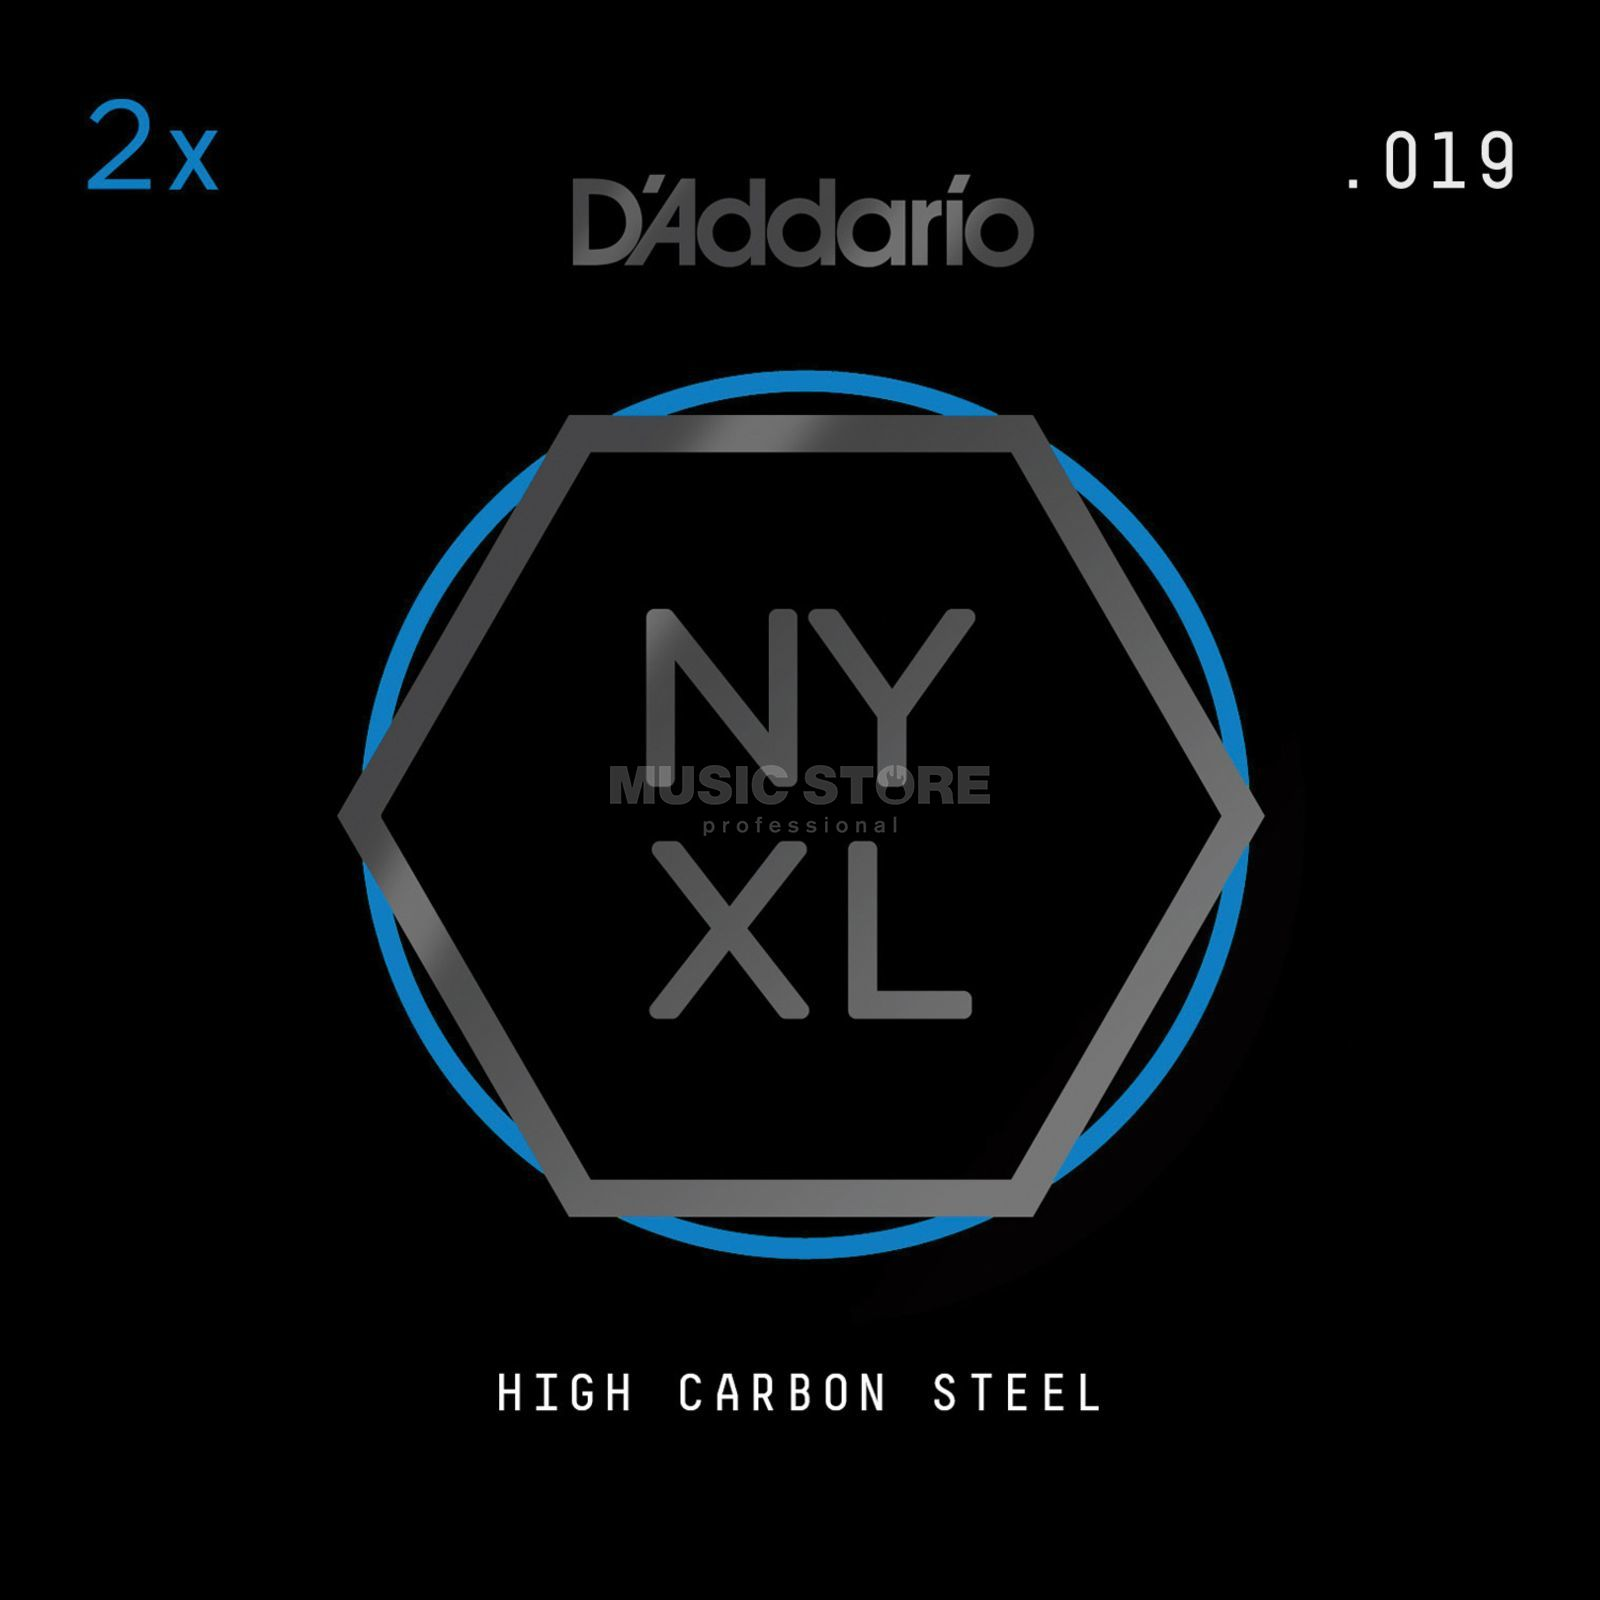 D'Addario NYPL019 Plain Single String 2-Pack - High Carbon Steel Produktbillede